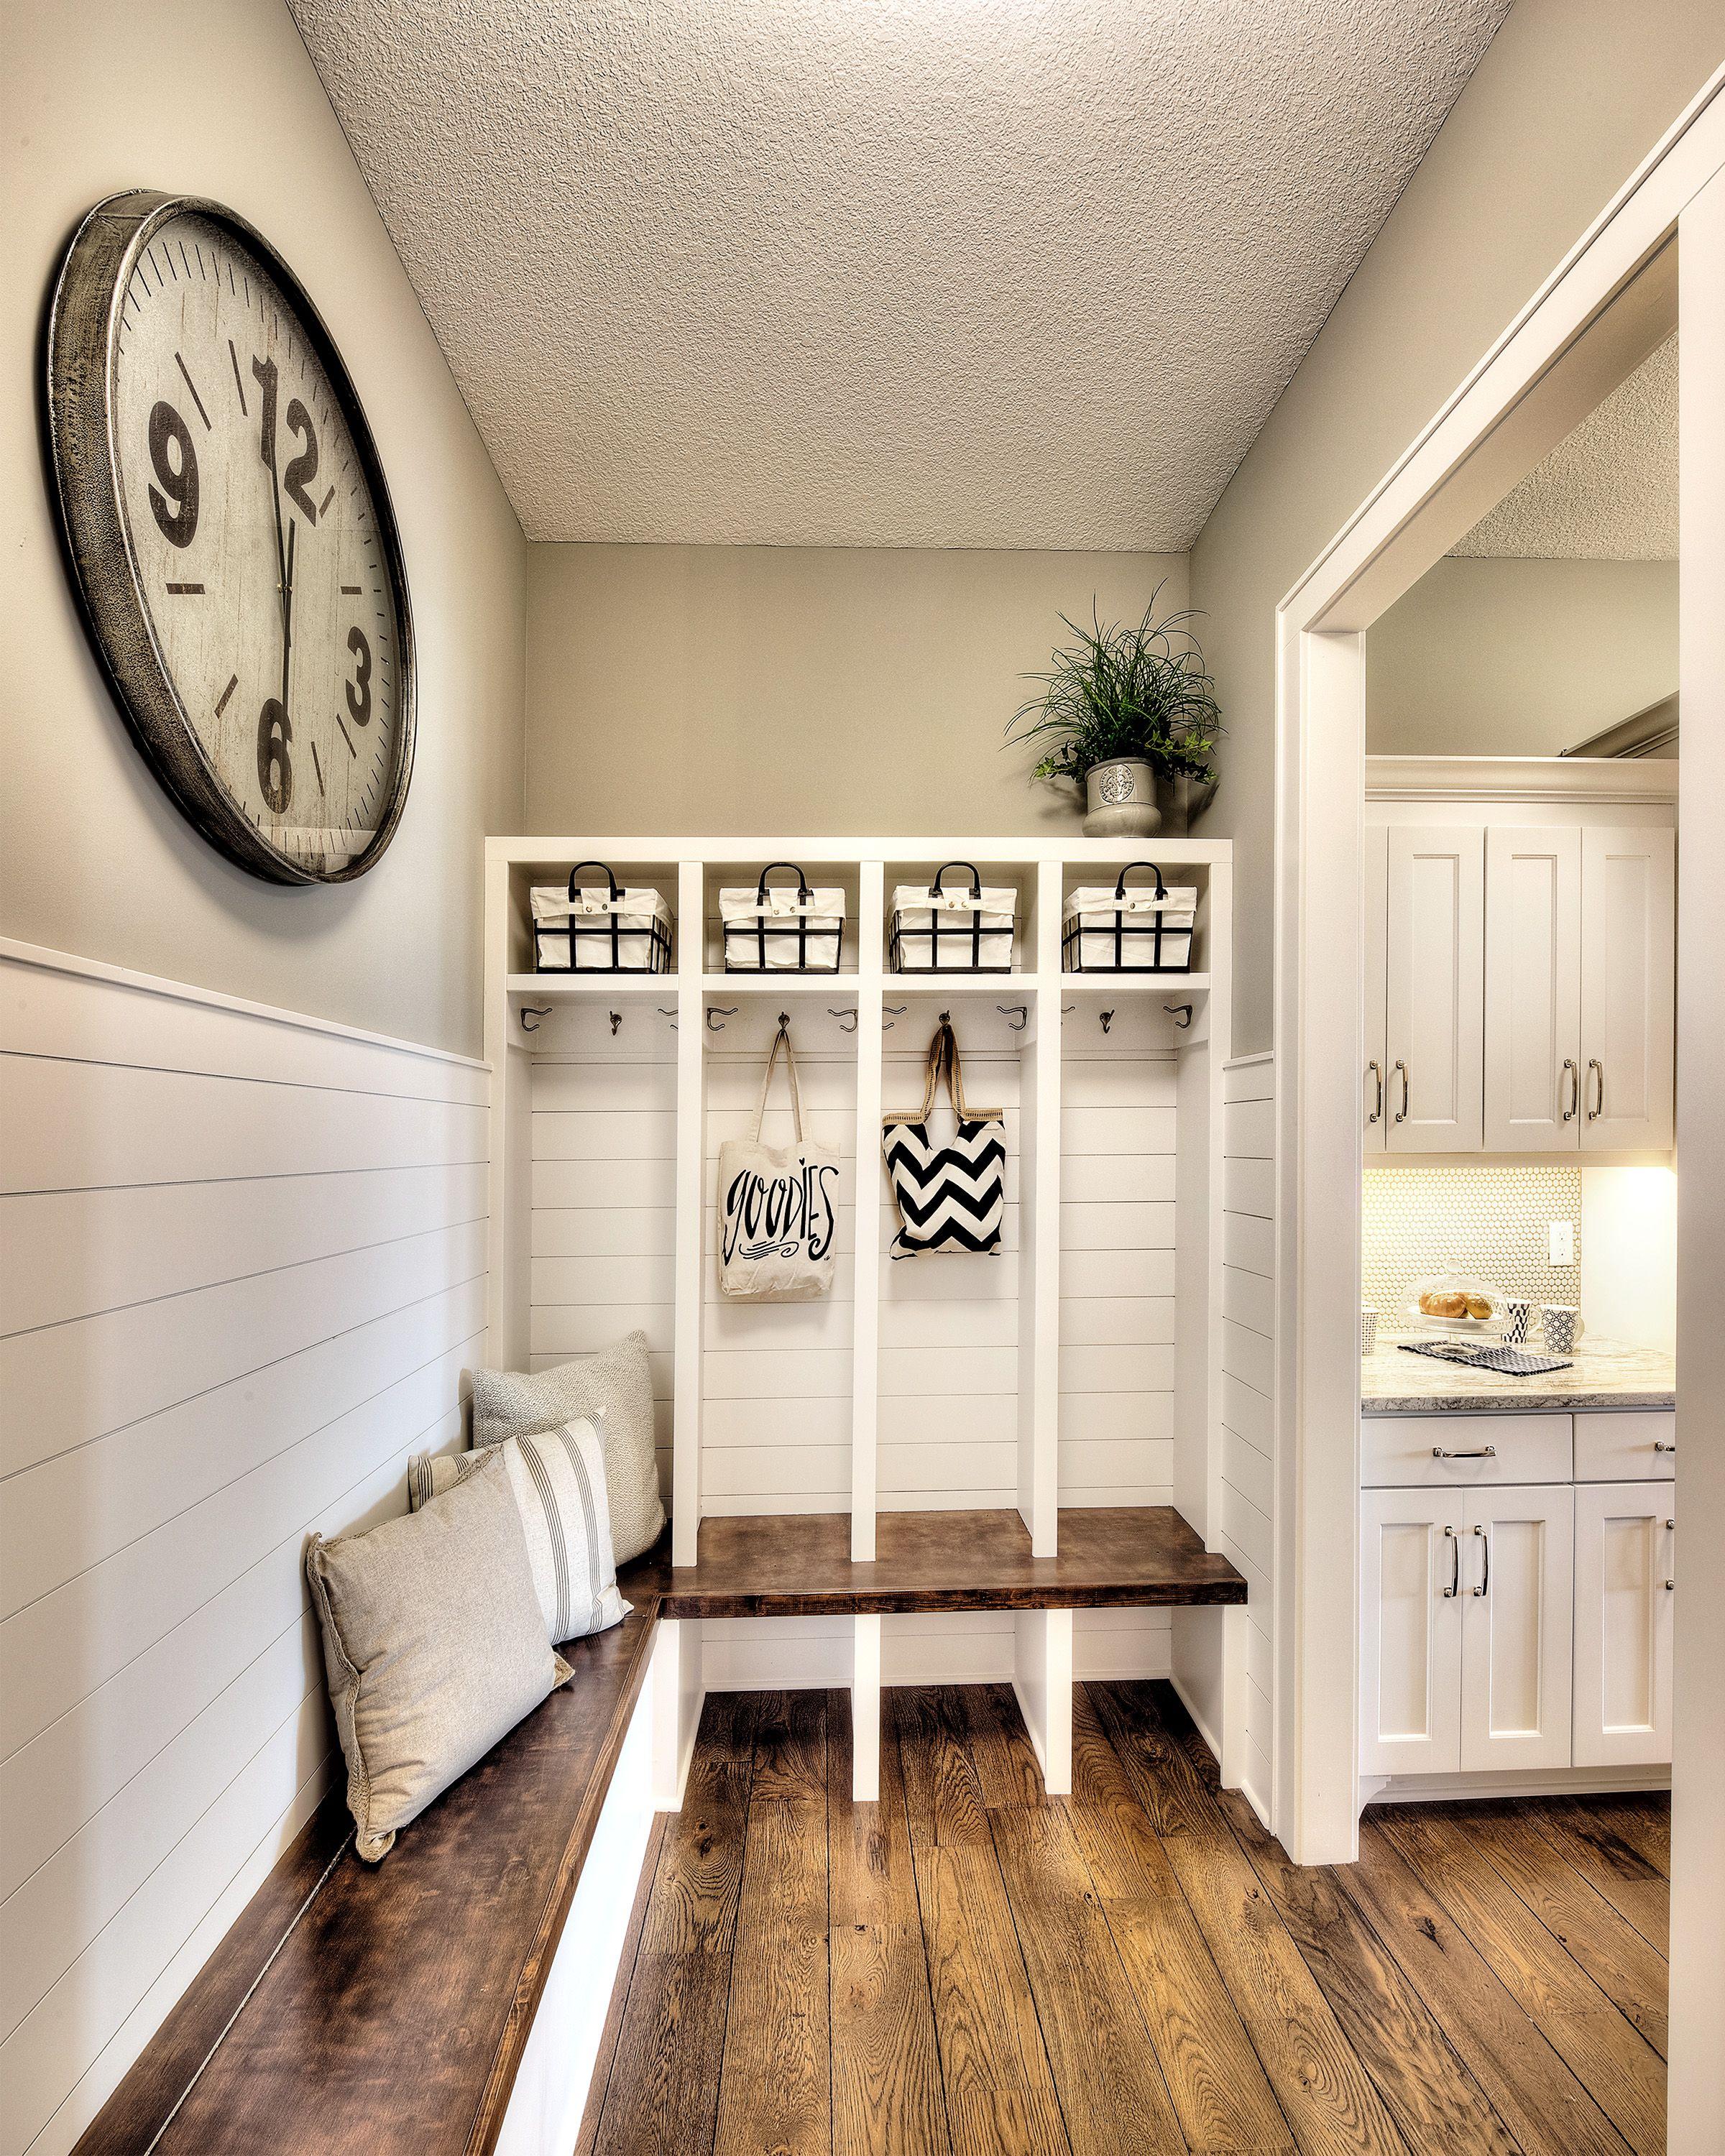 bench doors wayfair reviews entryway loon storage pdx with wood furniture peak canton cabinet camille